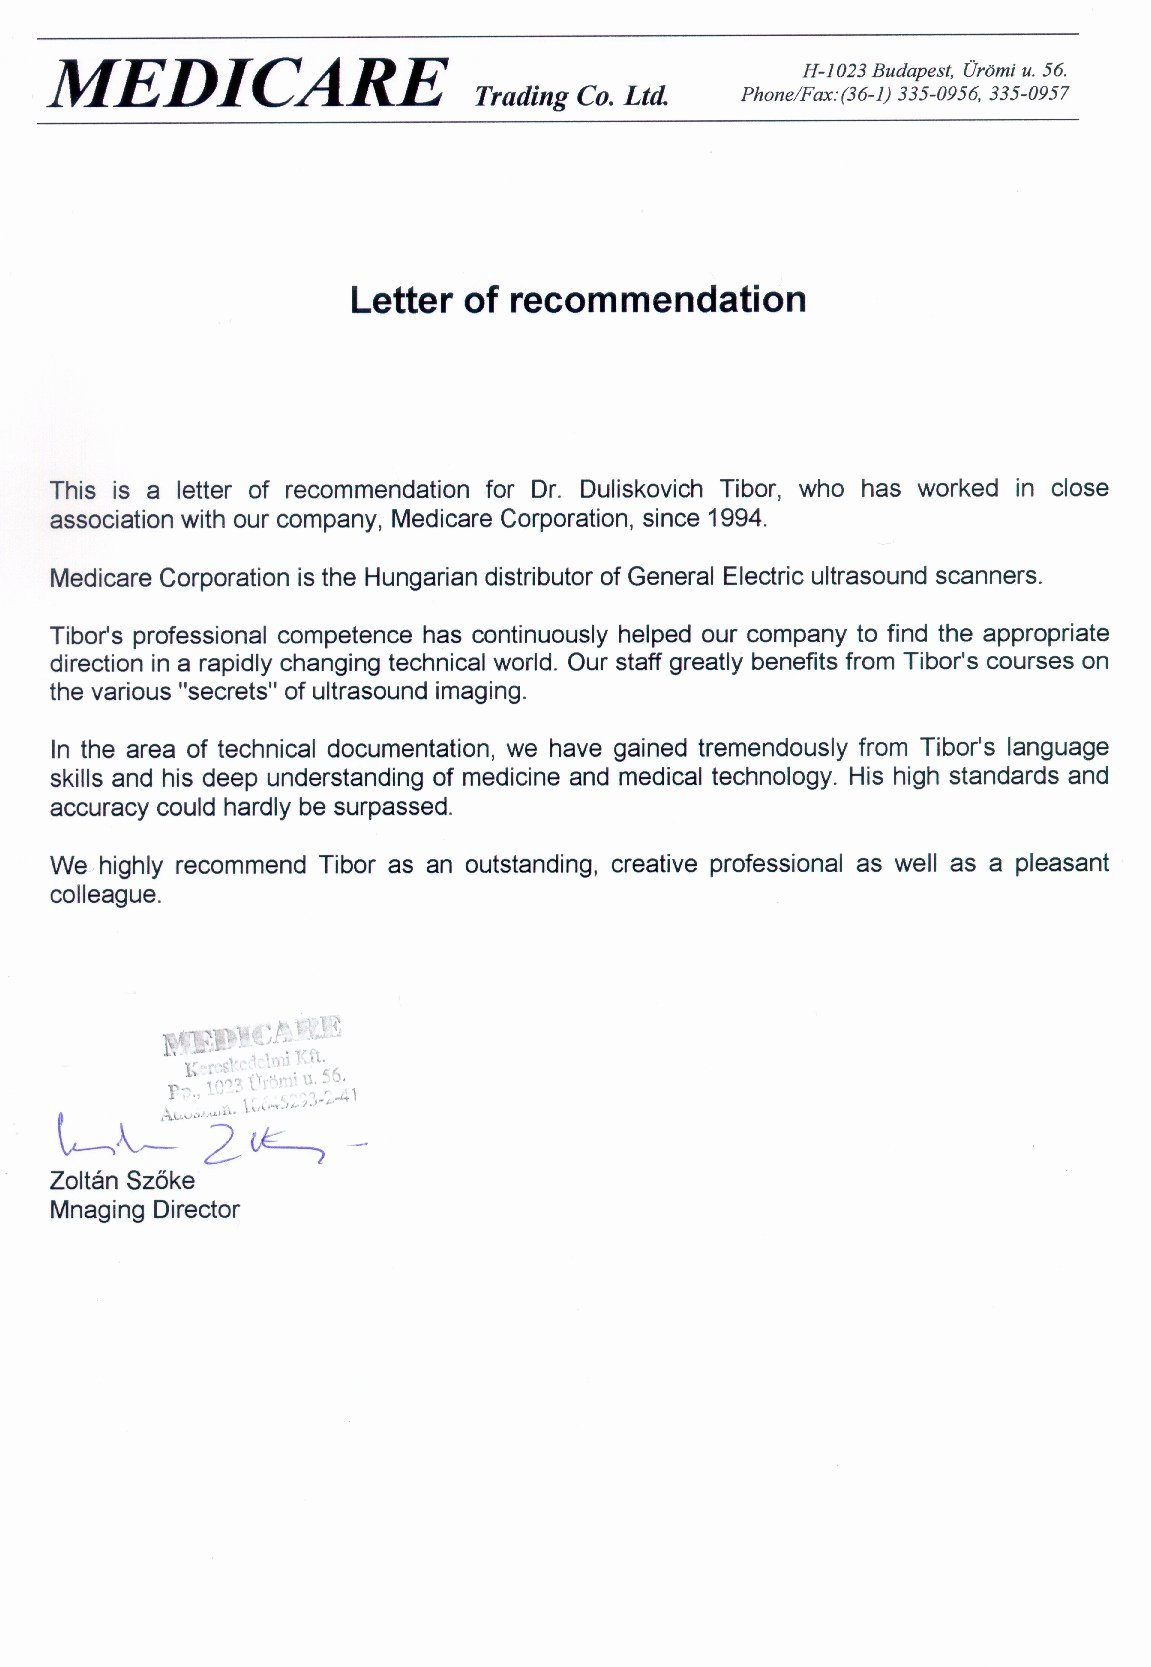 Medical assistant Letter Of Recommendation Best Of Letter Of Re Mendation Medical assistant